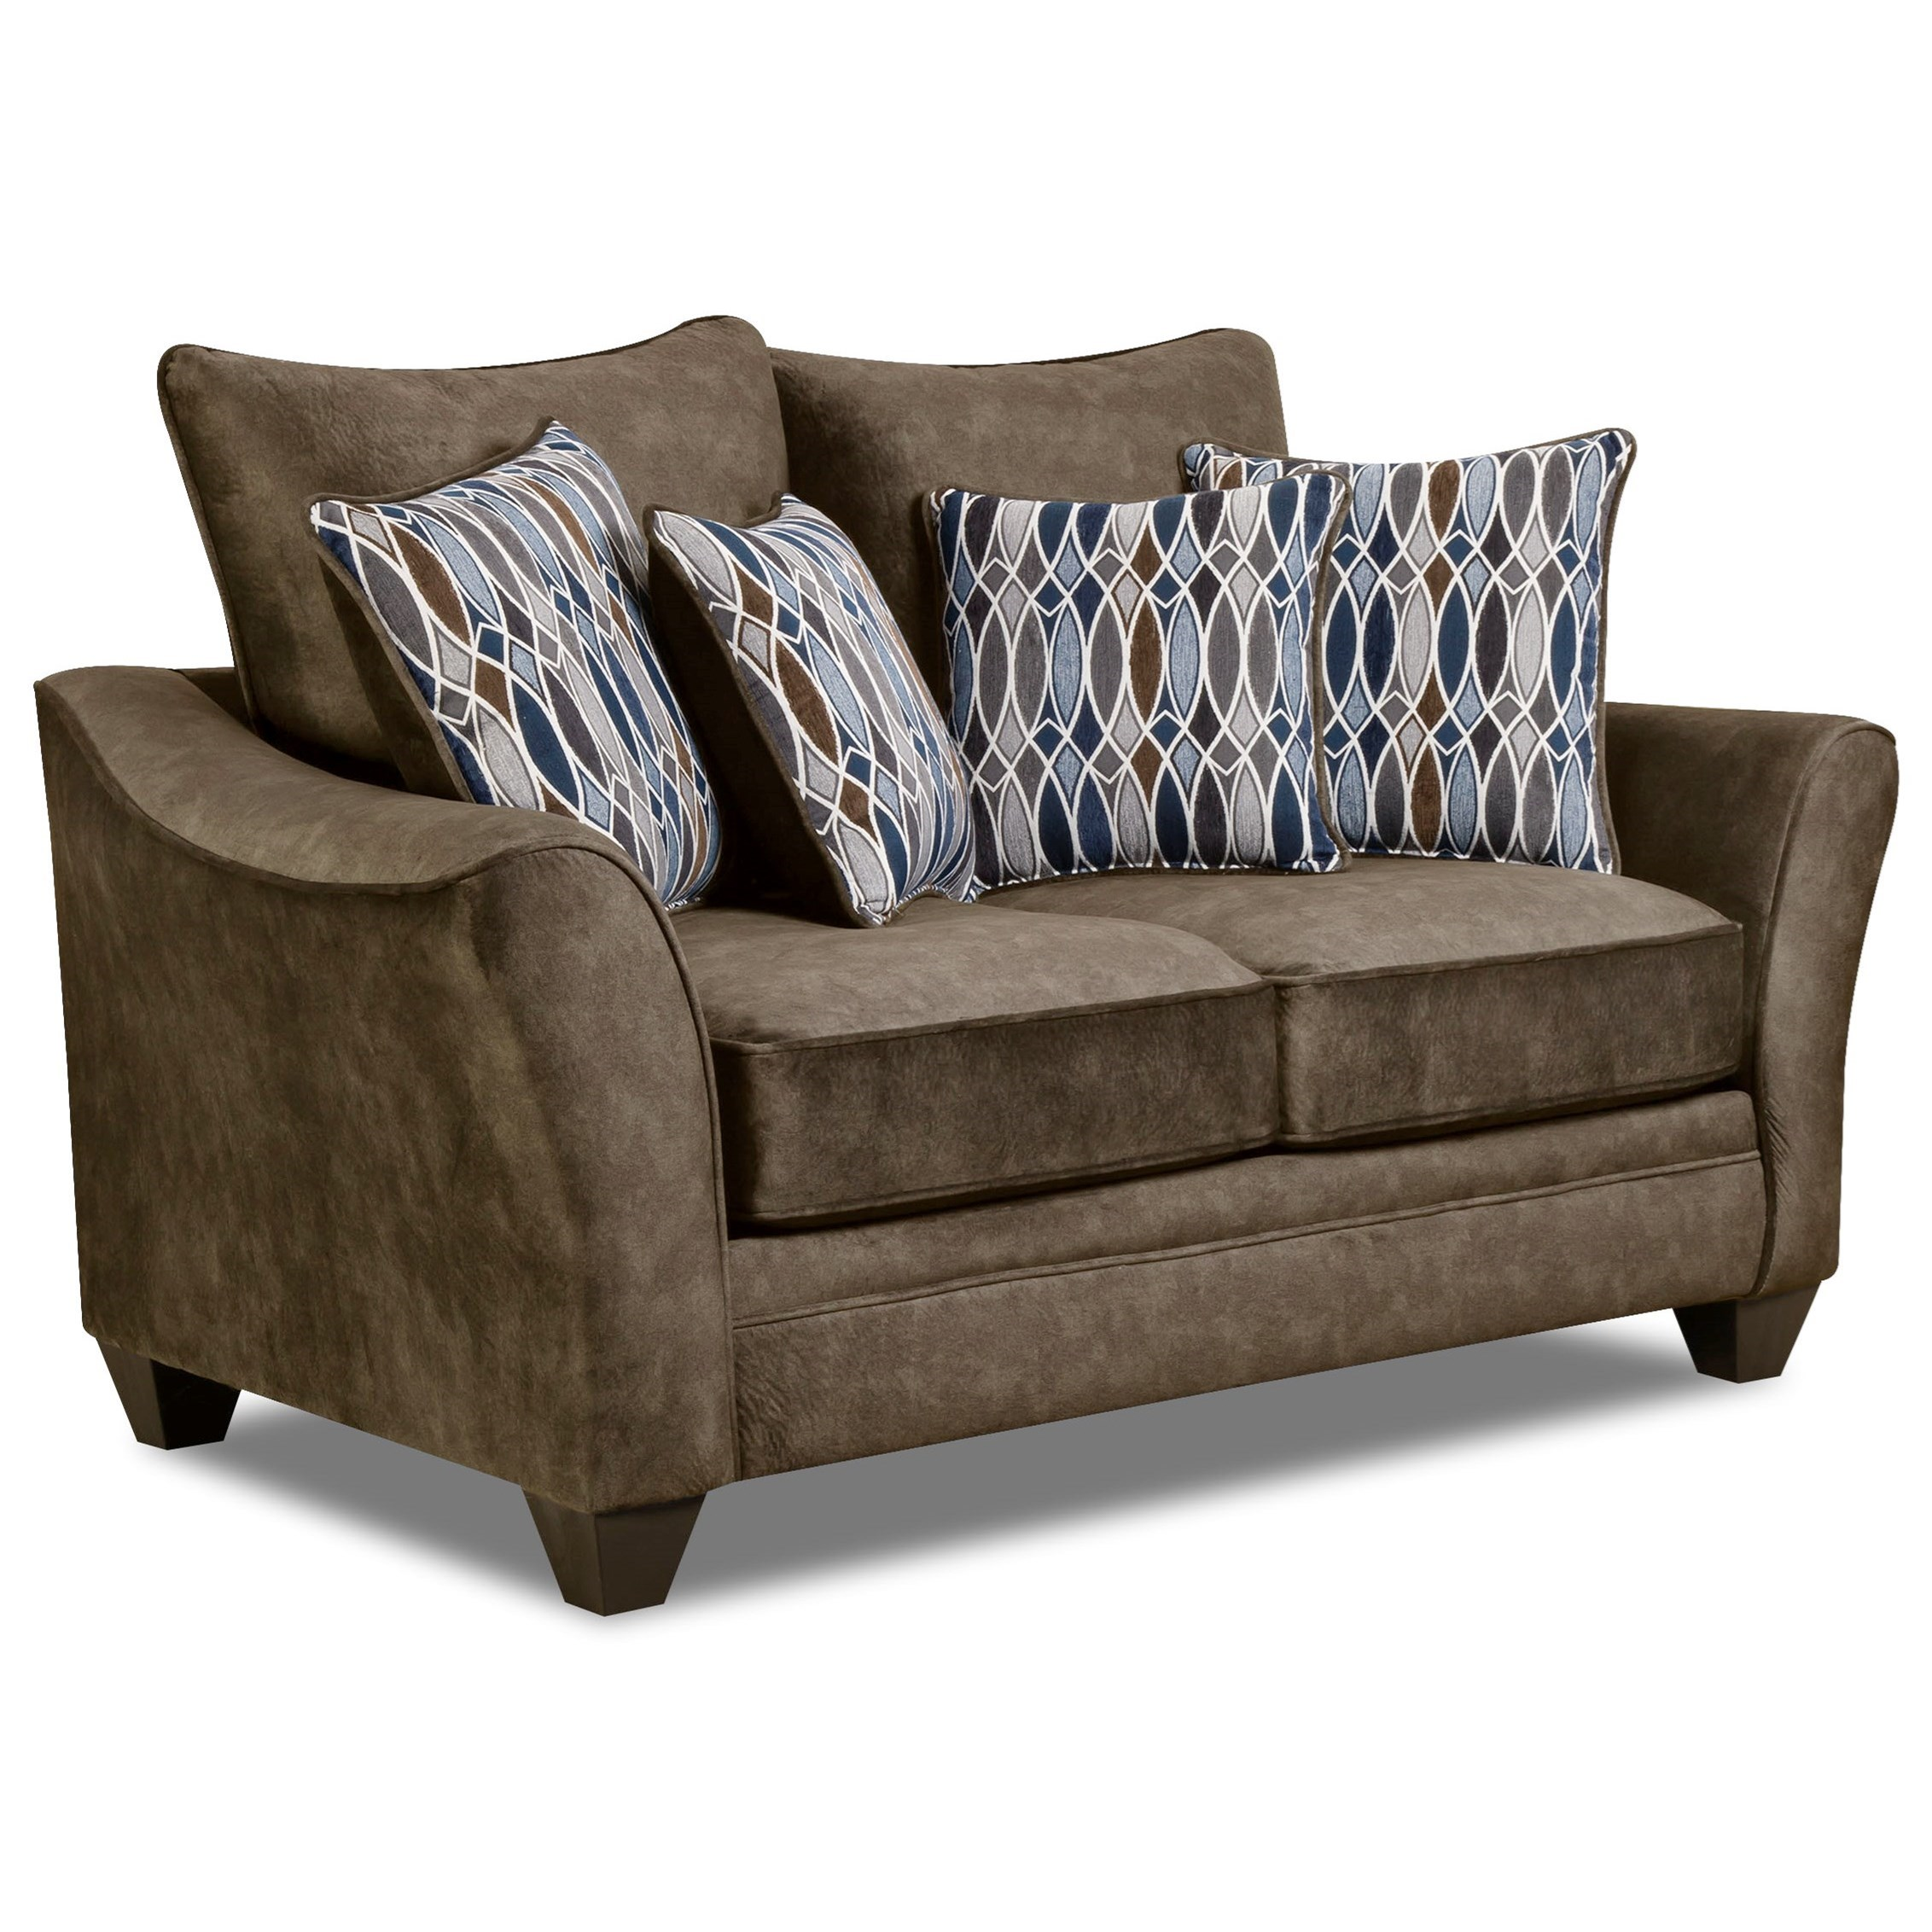 American Furniture 3850 Loveseat - Item Number: 3852-Athena-Brown